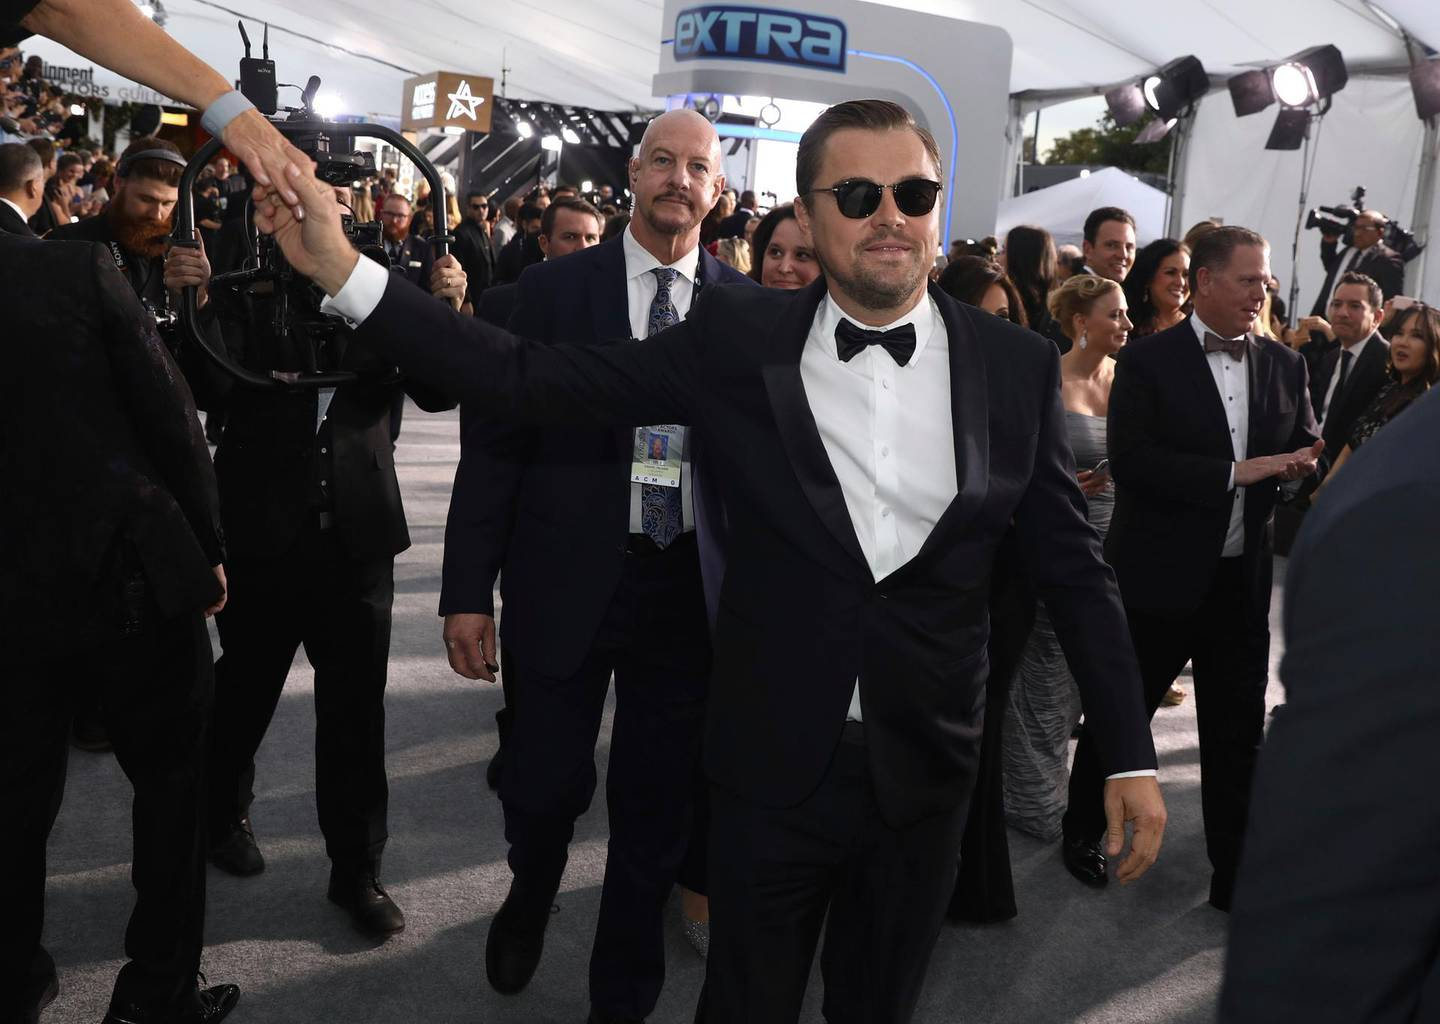 FILE - Leonardo DiCaprio arrives at the 26th annual Screen Actors Guild Awards on Jan. 19, 2020, in Los Angeles. DiCaprio turns 46 on Nov. 11 (Photo by Matt Sayles/Invision/AP, File)